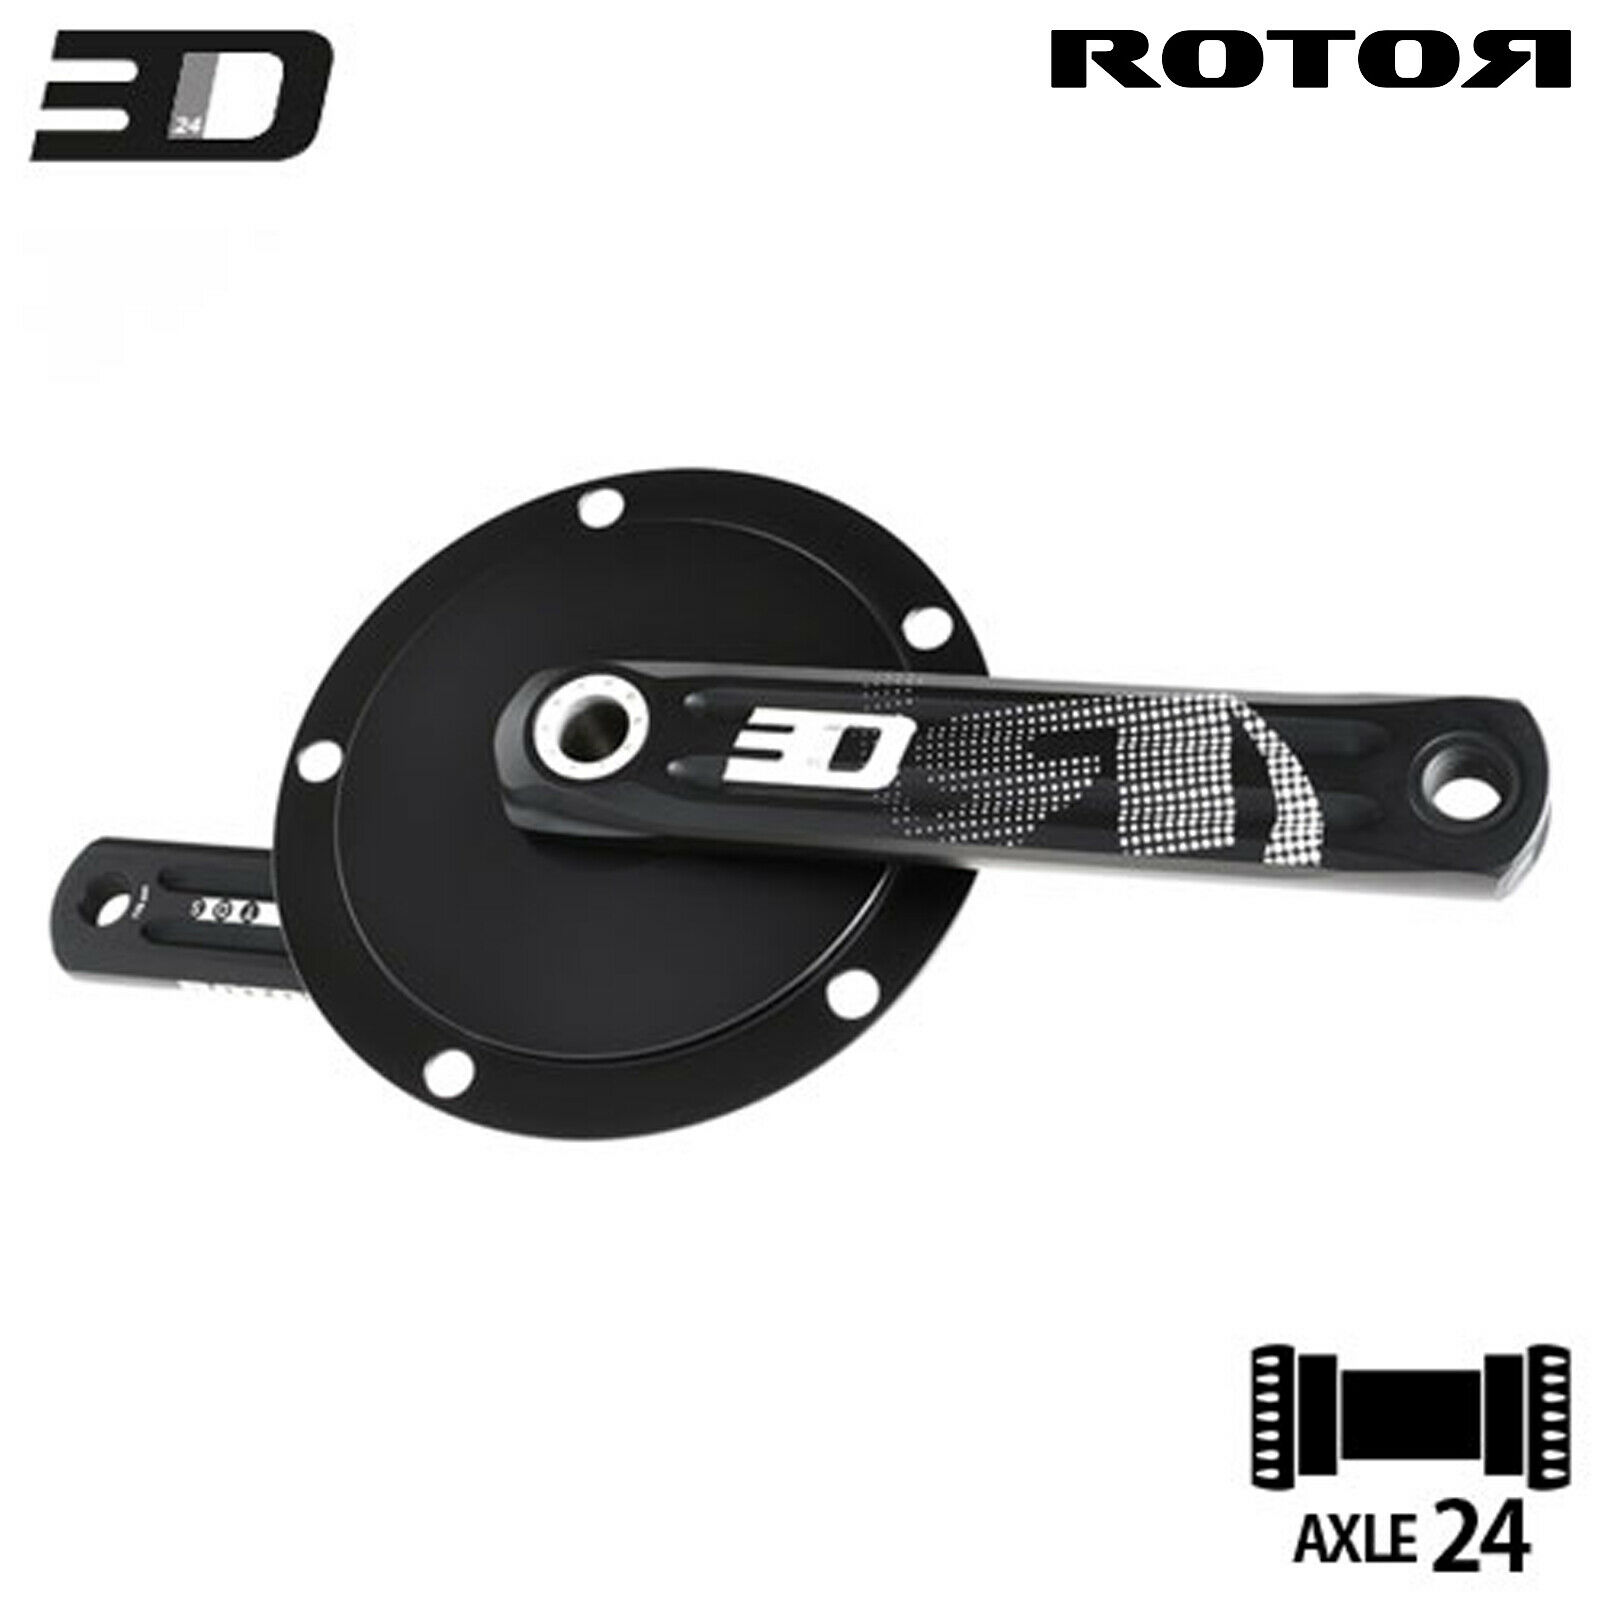 ROTOR TRACK CRANK 3D24mm 144BCD x 5bolt -167.5mm available